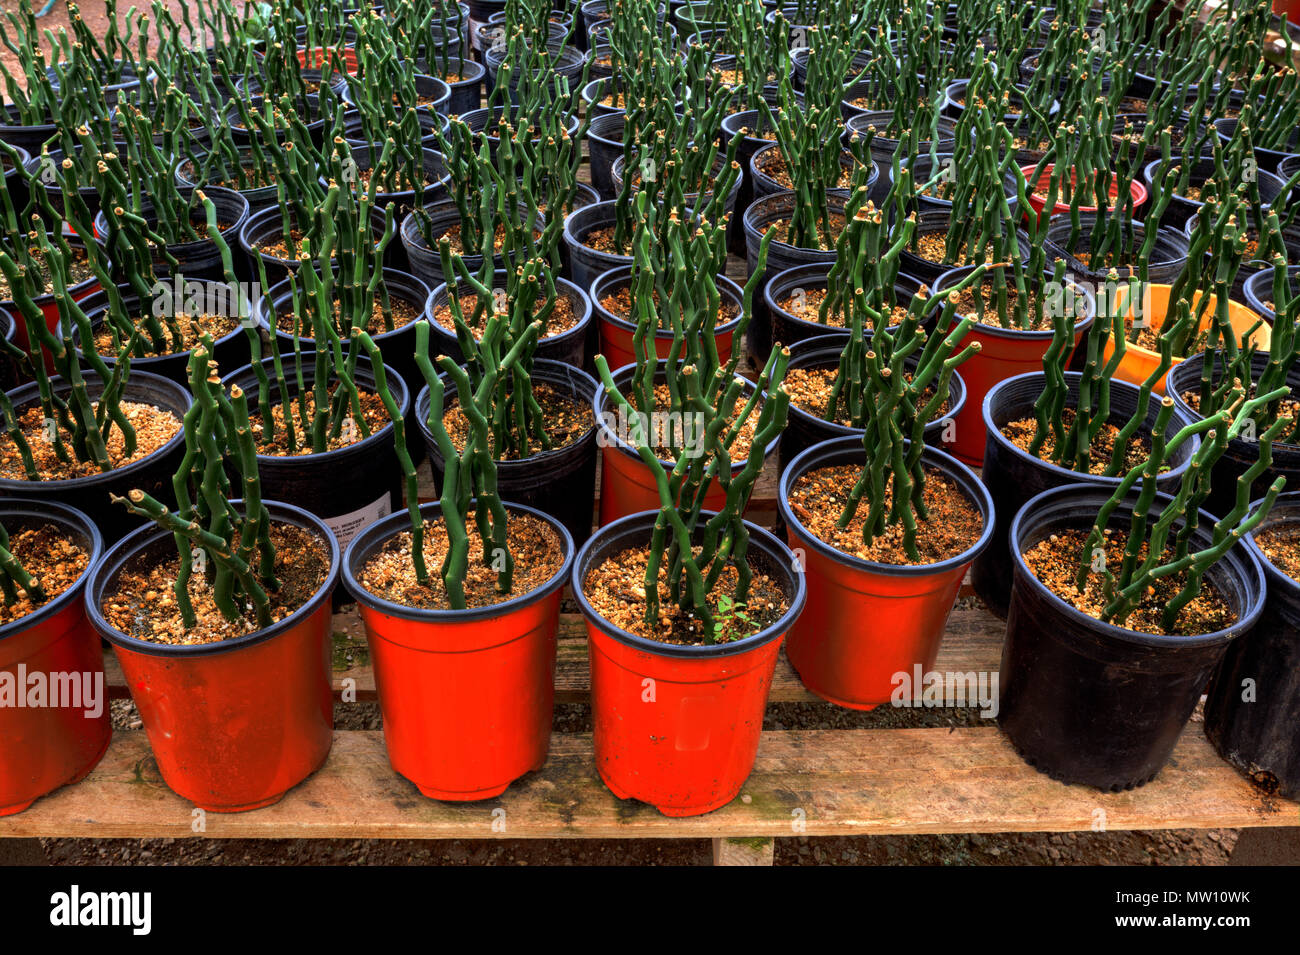 Bamboo Plants In Pots Stock Photo 187492751 Alamy